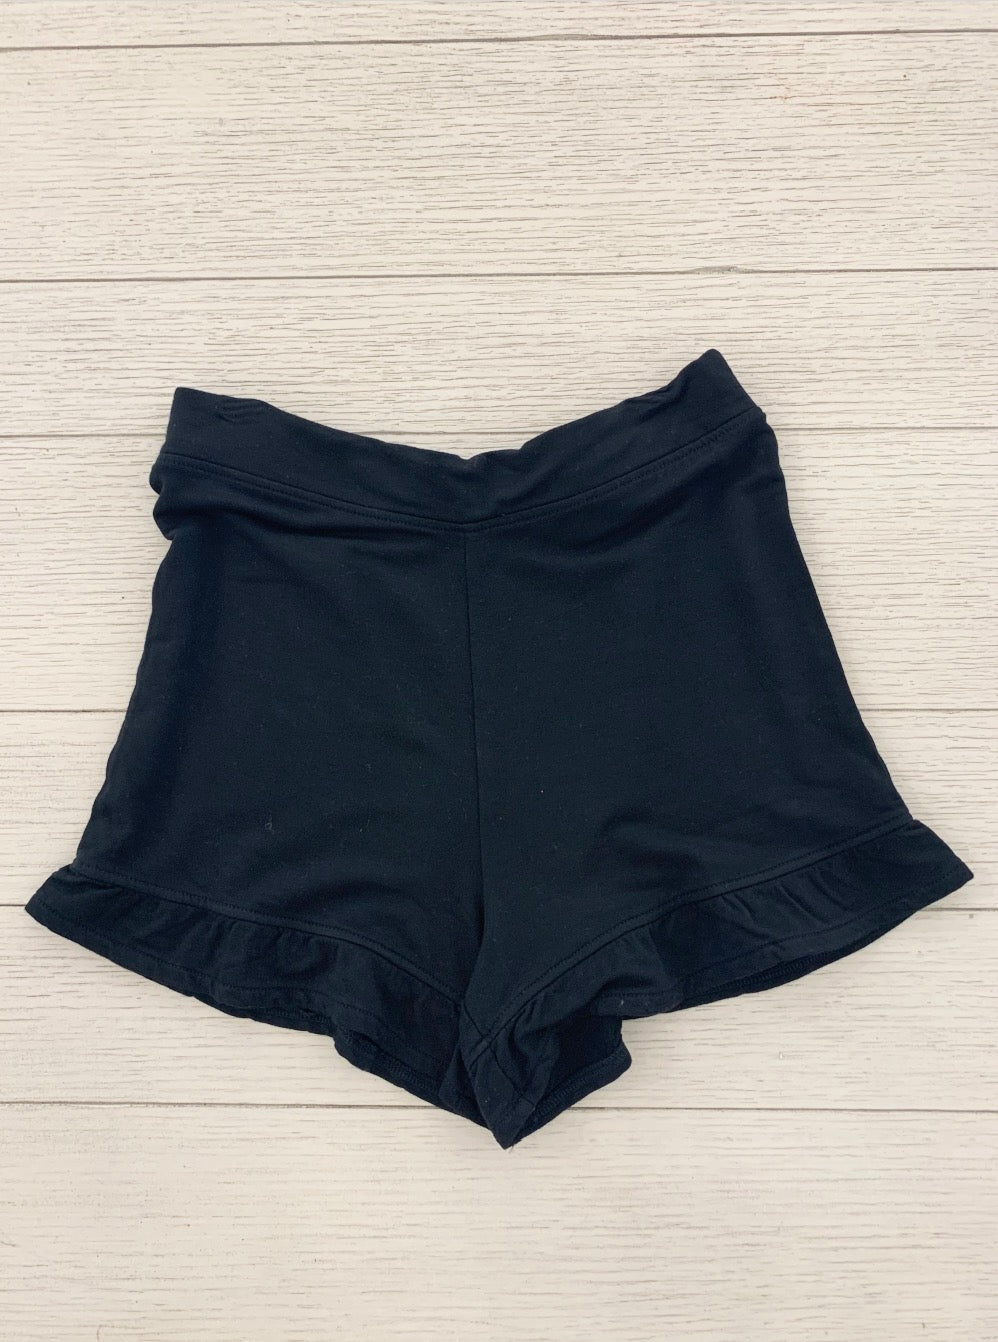 Black Ruffle Short